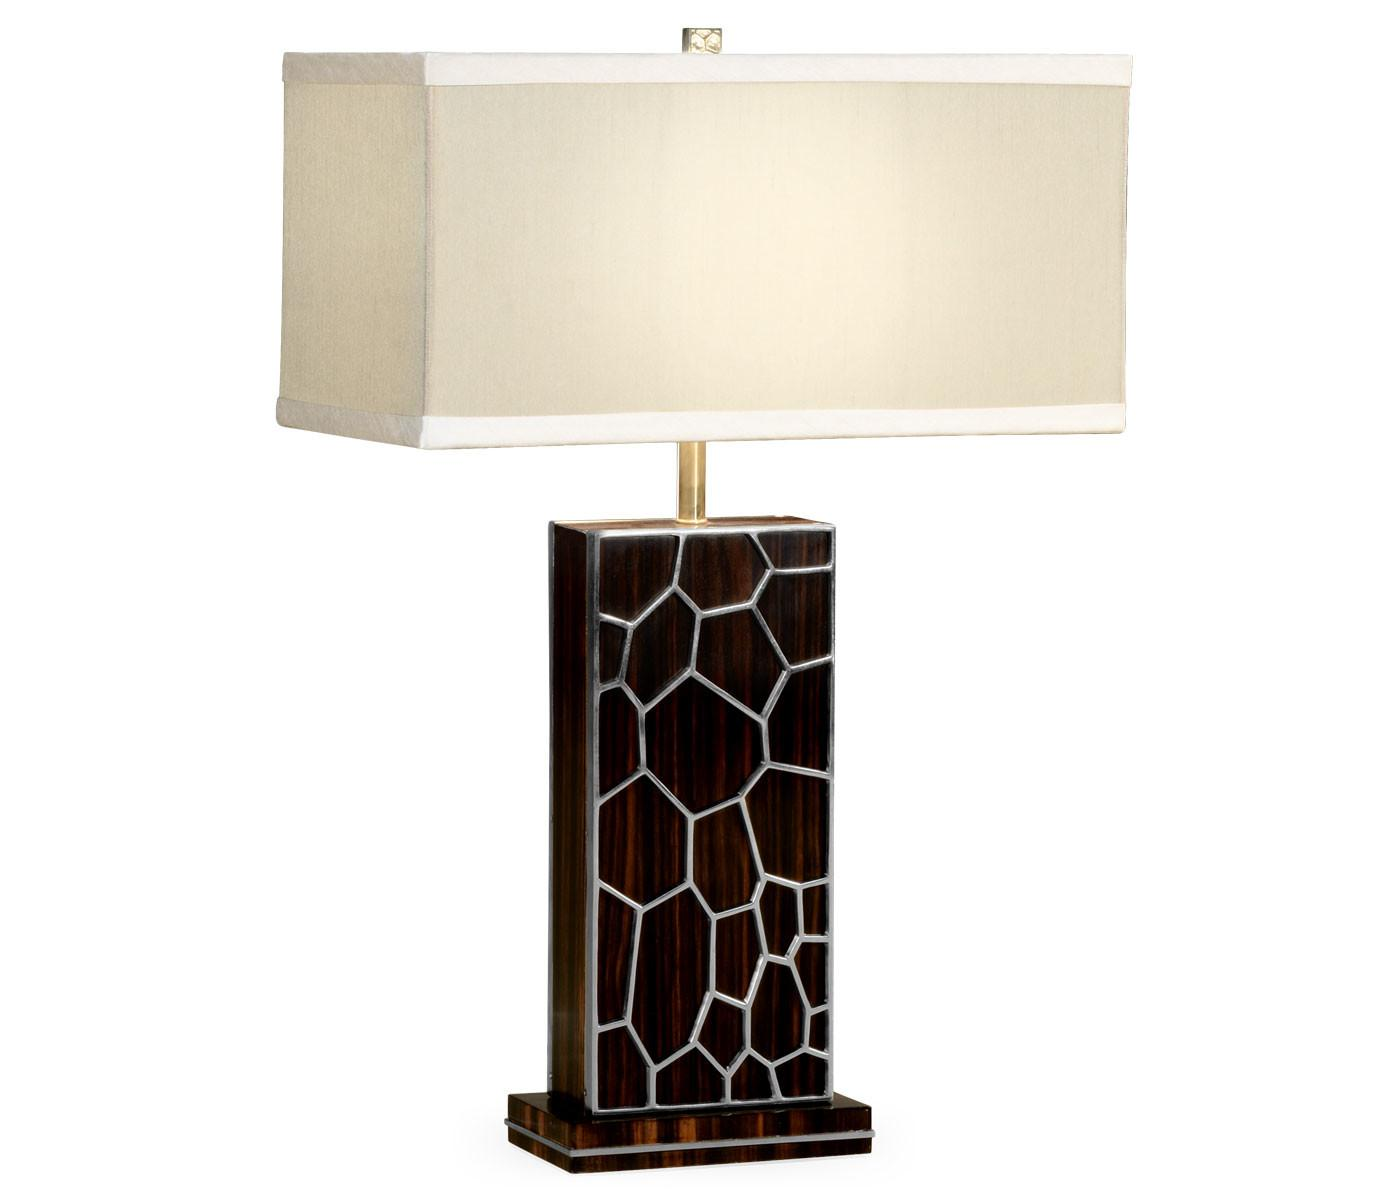 Luxury Lamps Lamp Designer